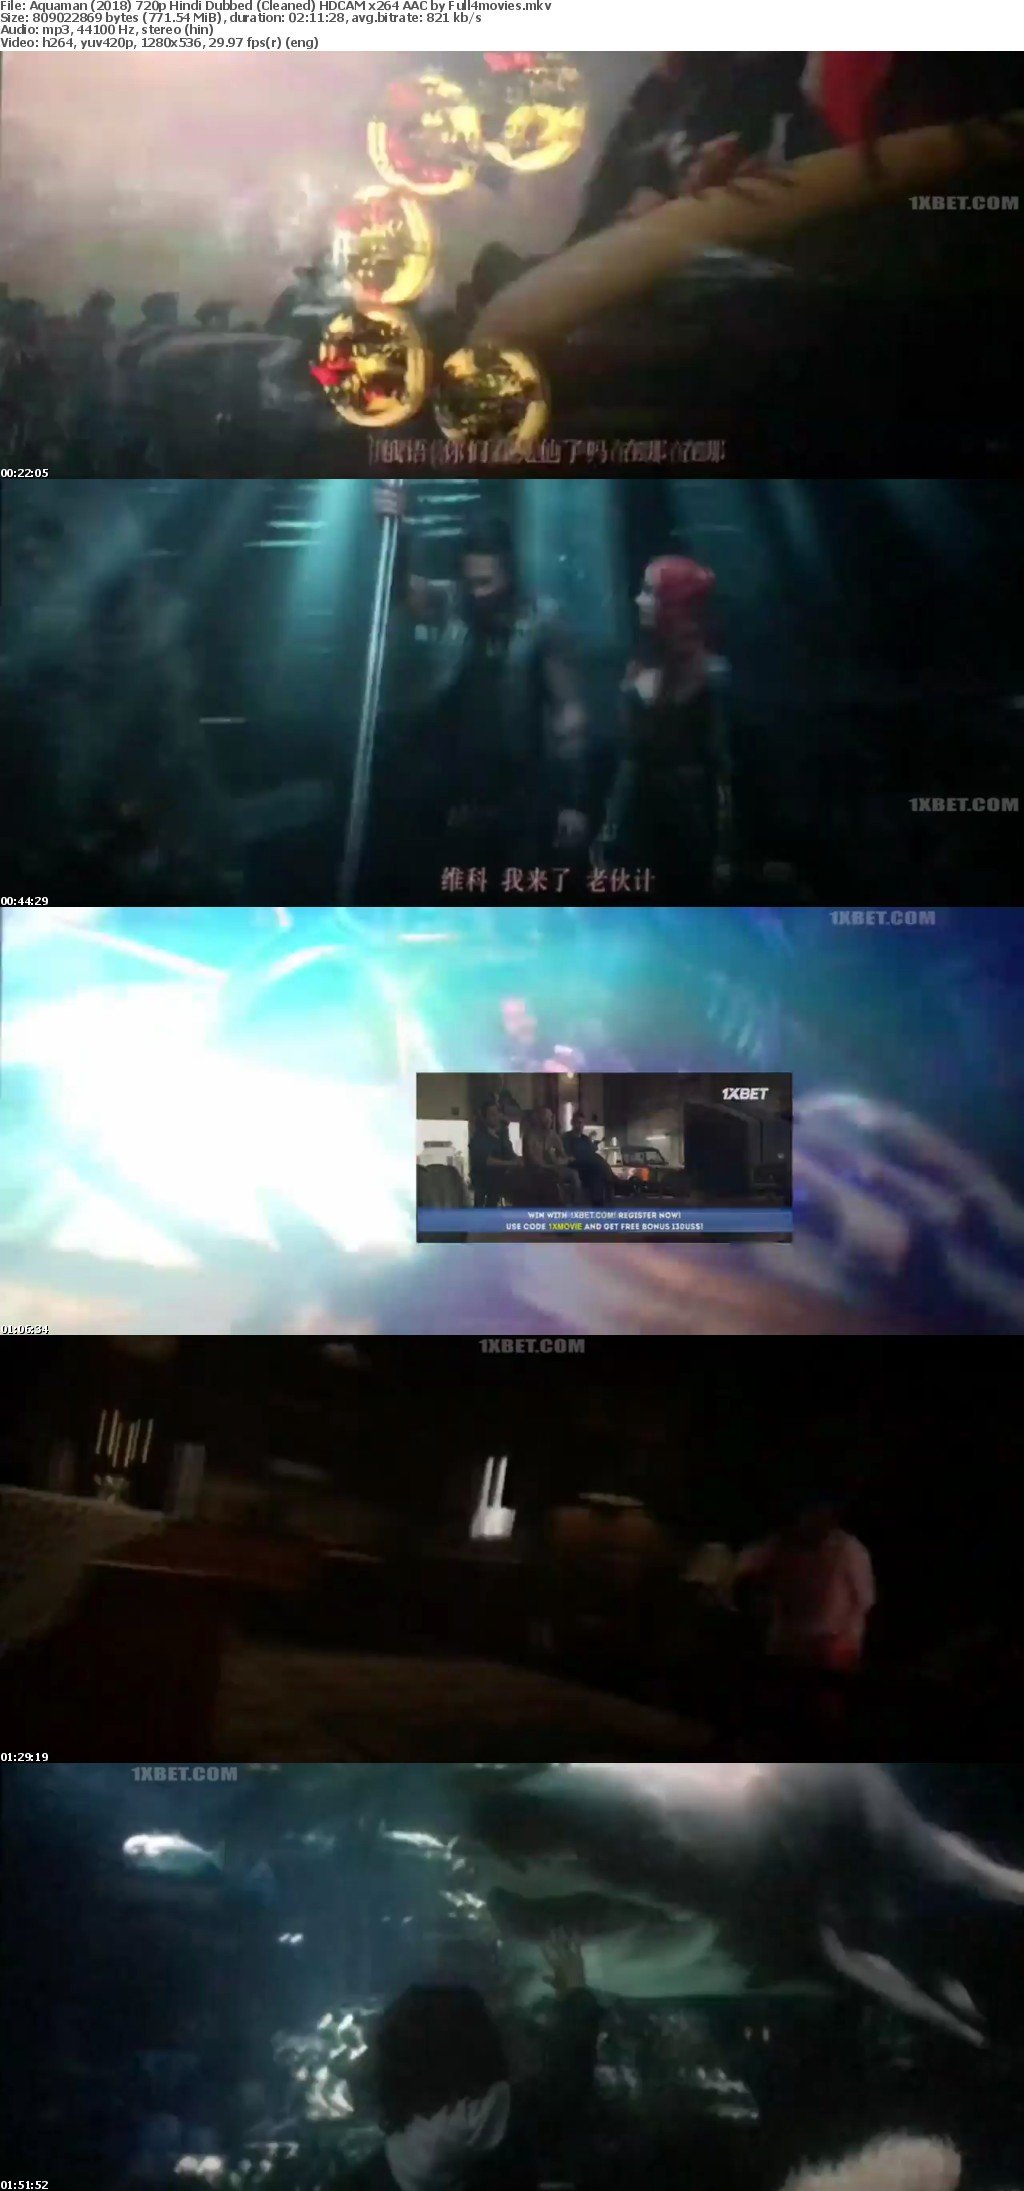 Aquaman 2018 720p Hindi Dubbed (Cleaned) HDCAM x264 AAC by Full4movies